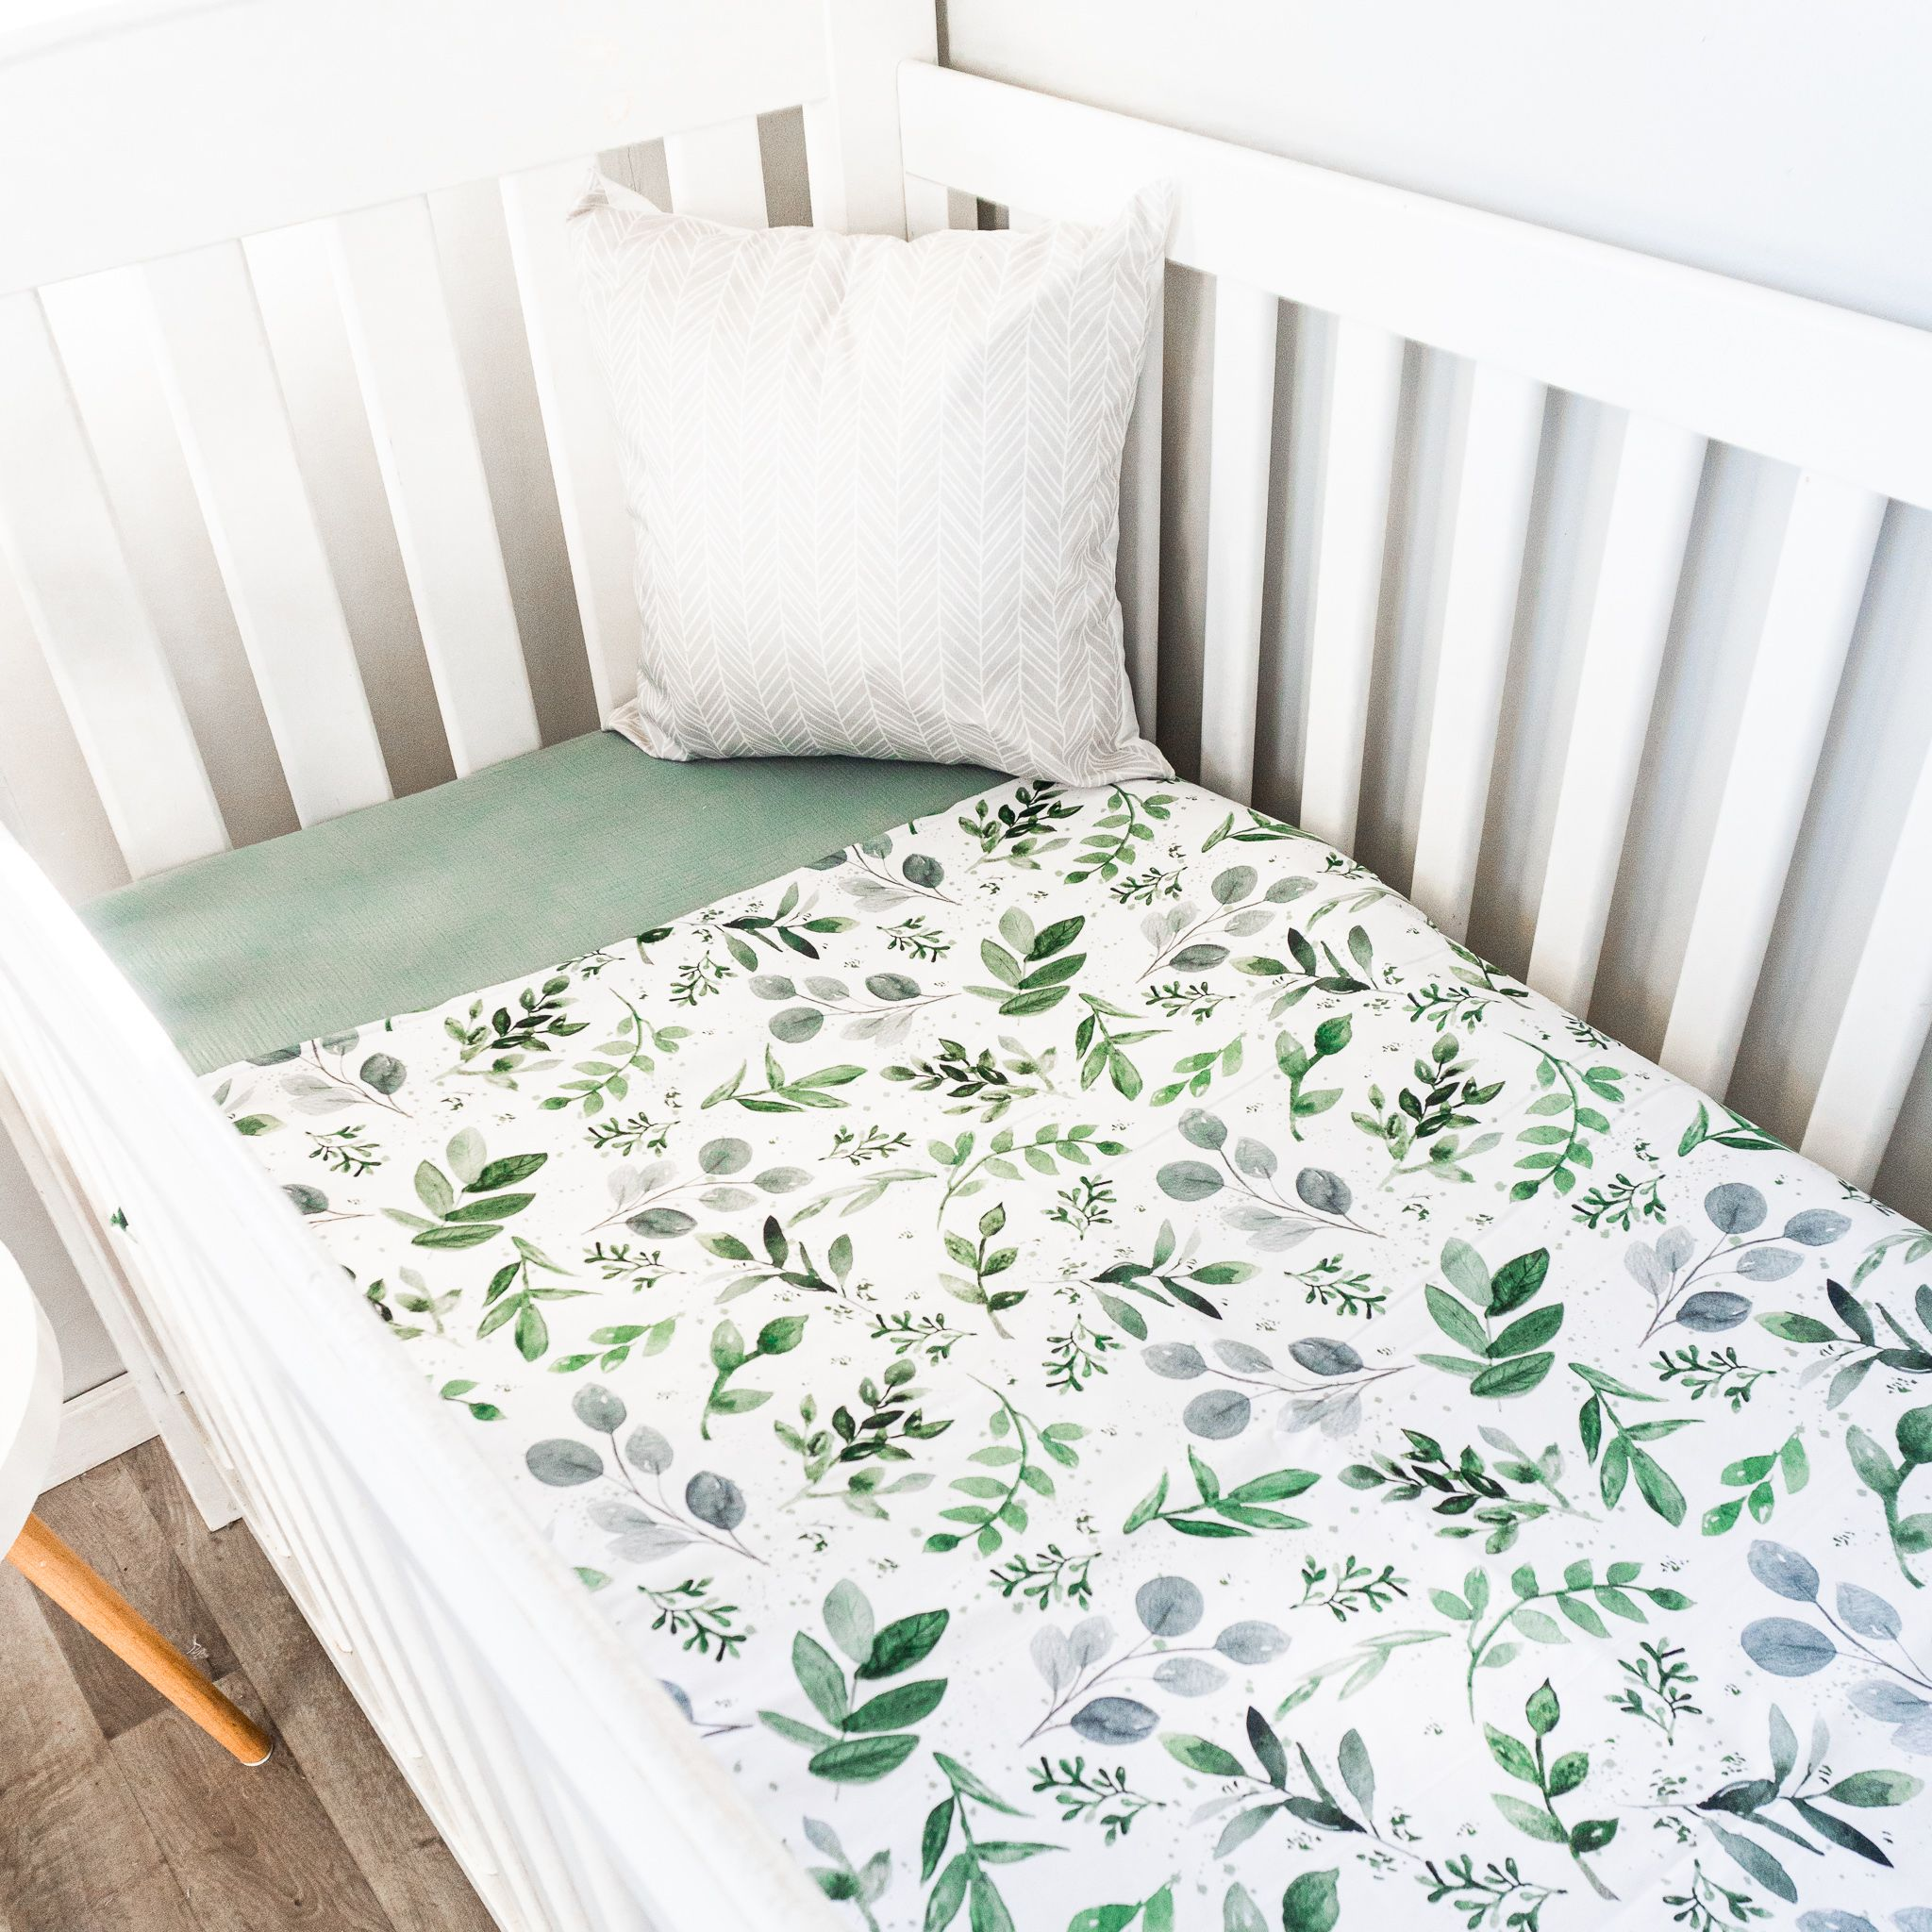 Back Order Watercolour Leaves Quilt Neutral Baby Blankets